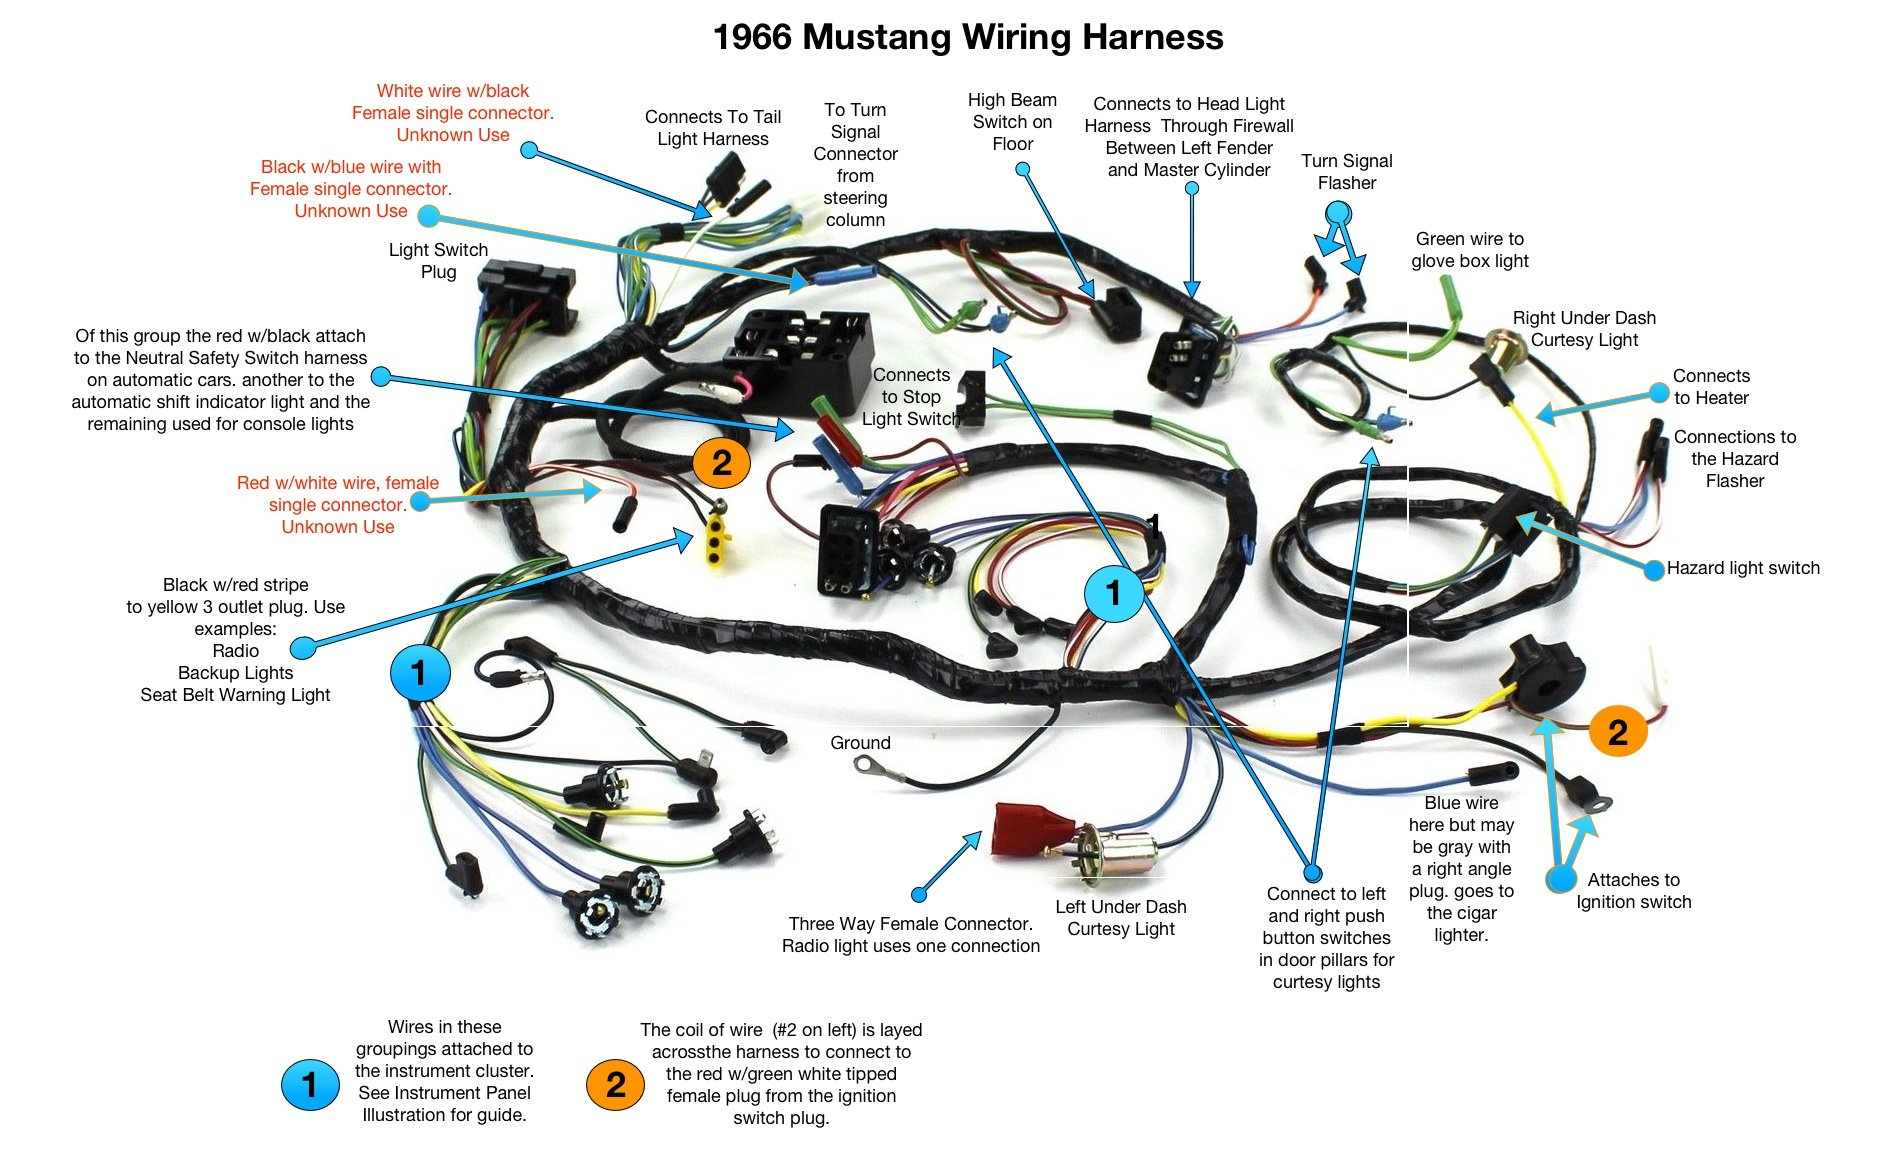 507585d1458686767 66 wiring harness diagram 66 mustang wiring harness harness wiring diagram jeep wrangler wiring harness diagram \u2022 free auto wiring harness diagram at aneh.co